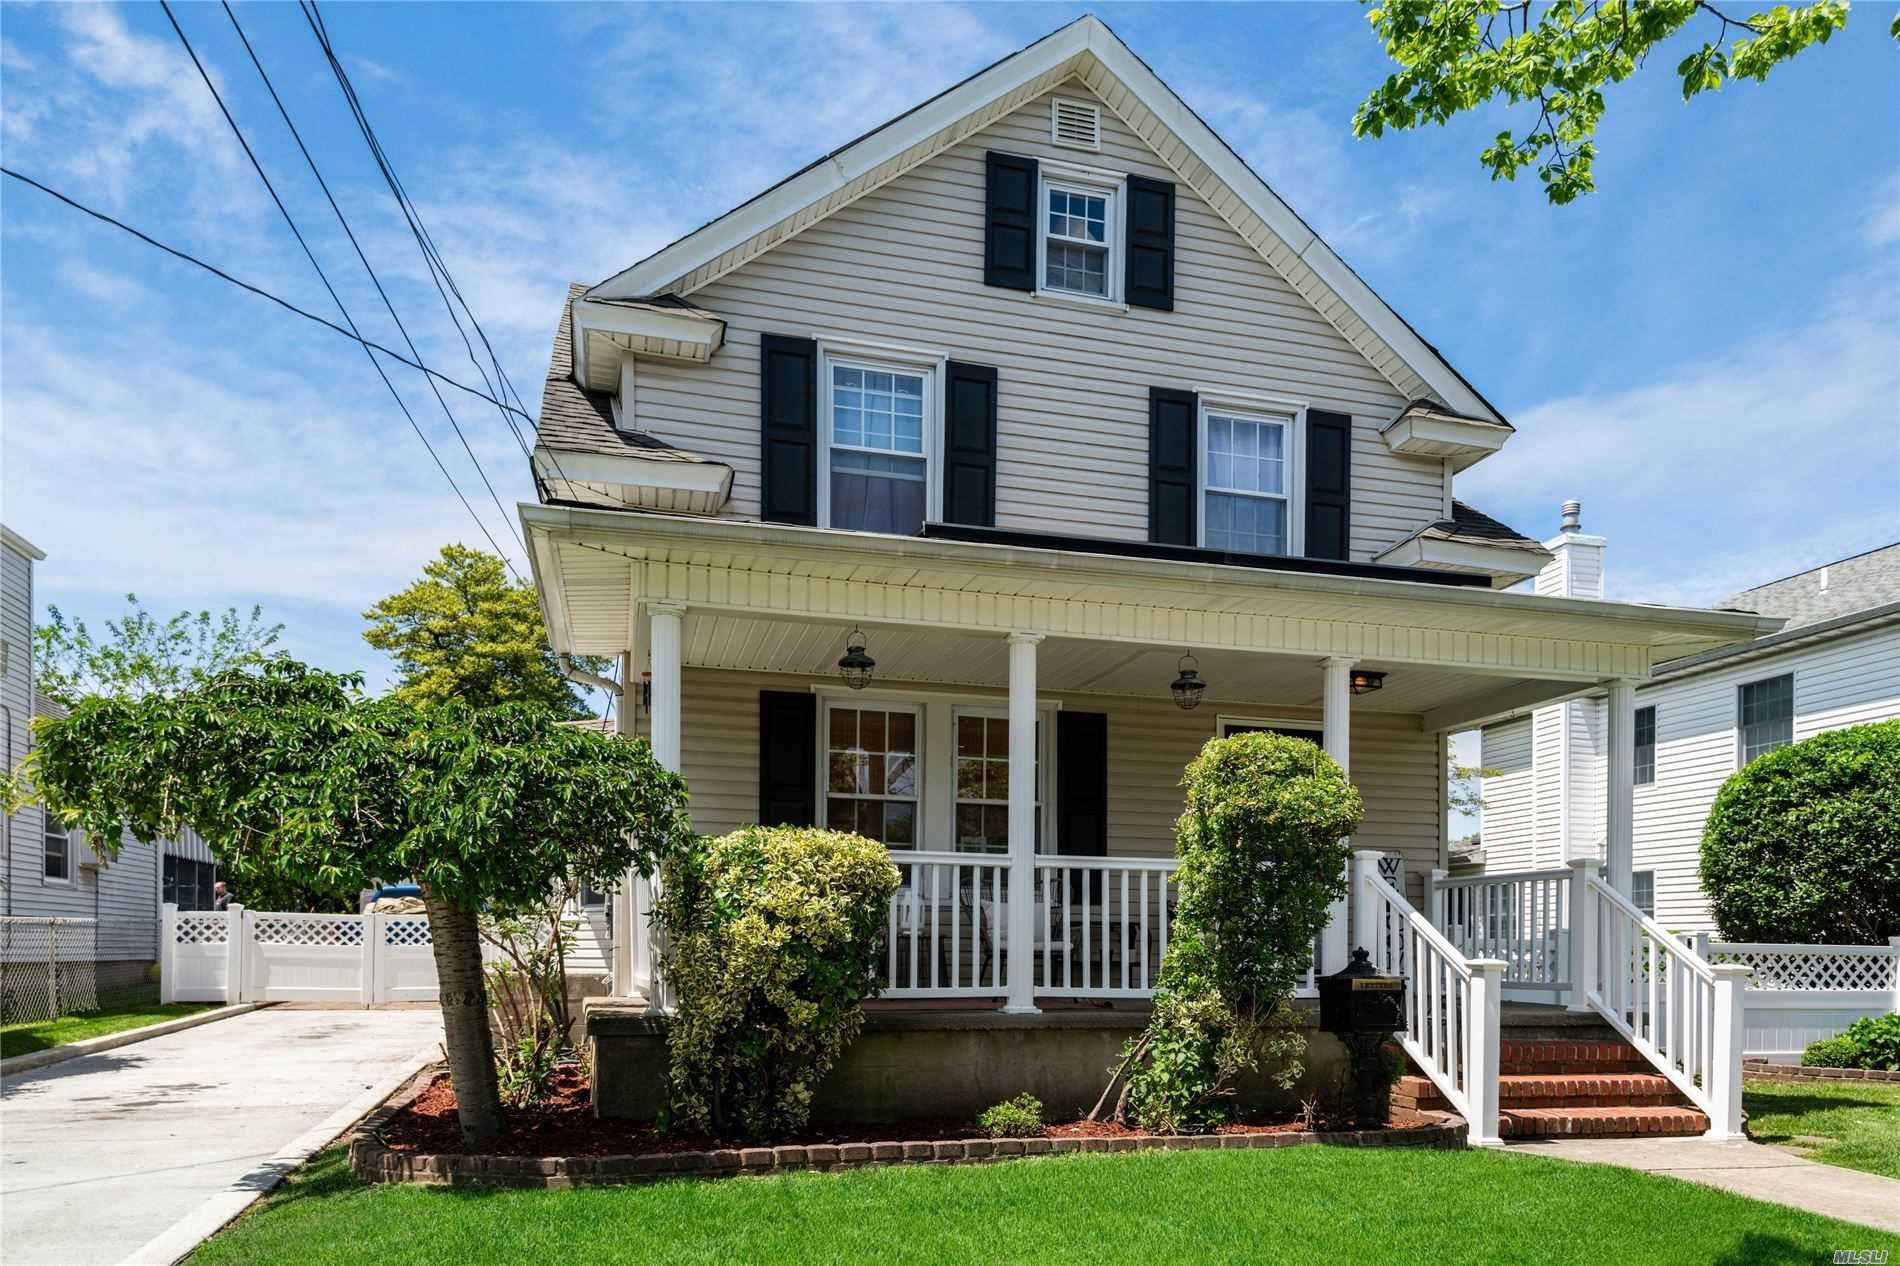 353 Pennsylvania Ave, Mineola, NY 11501 - MLS#: 3218472